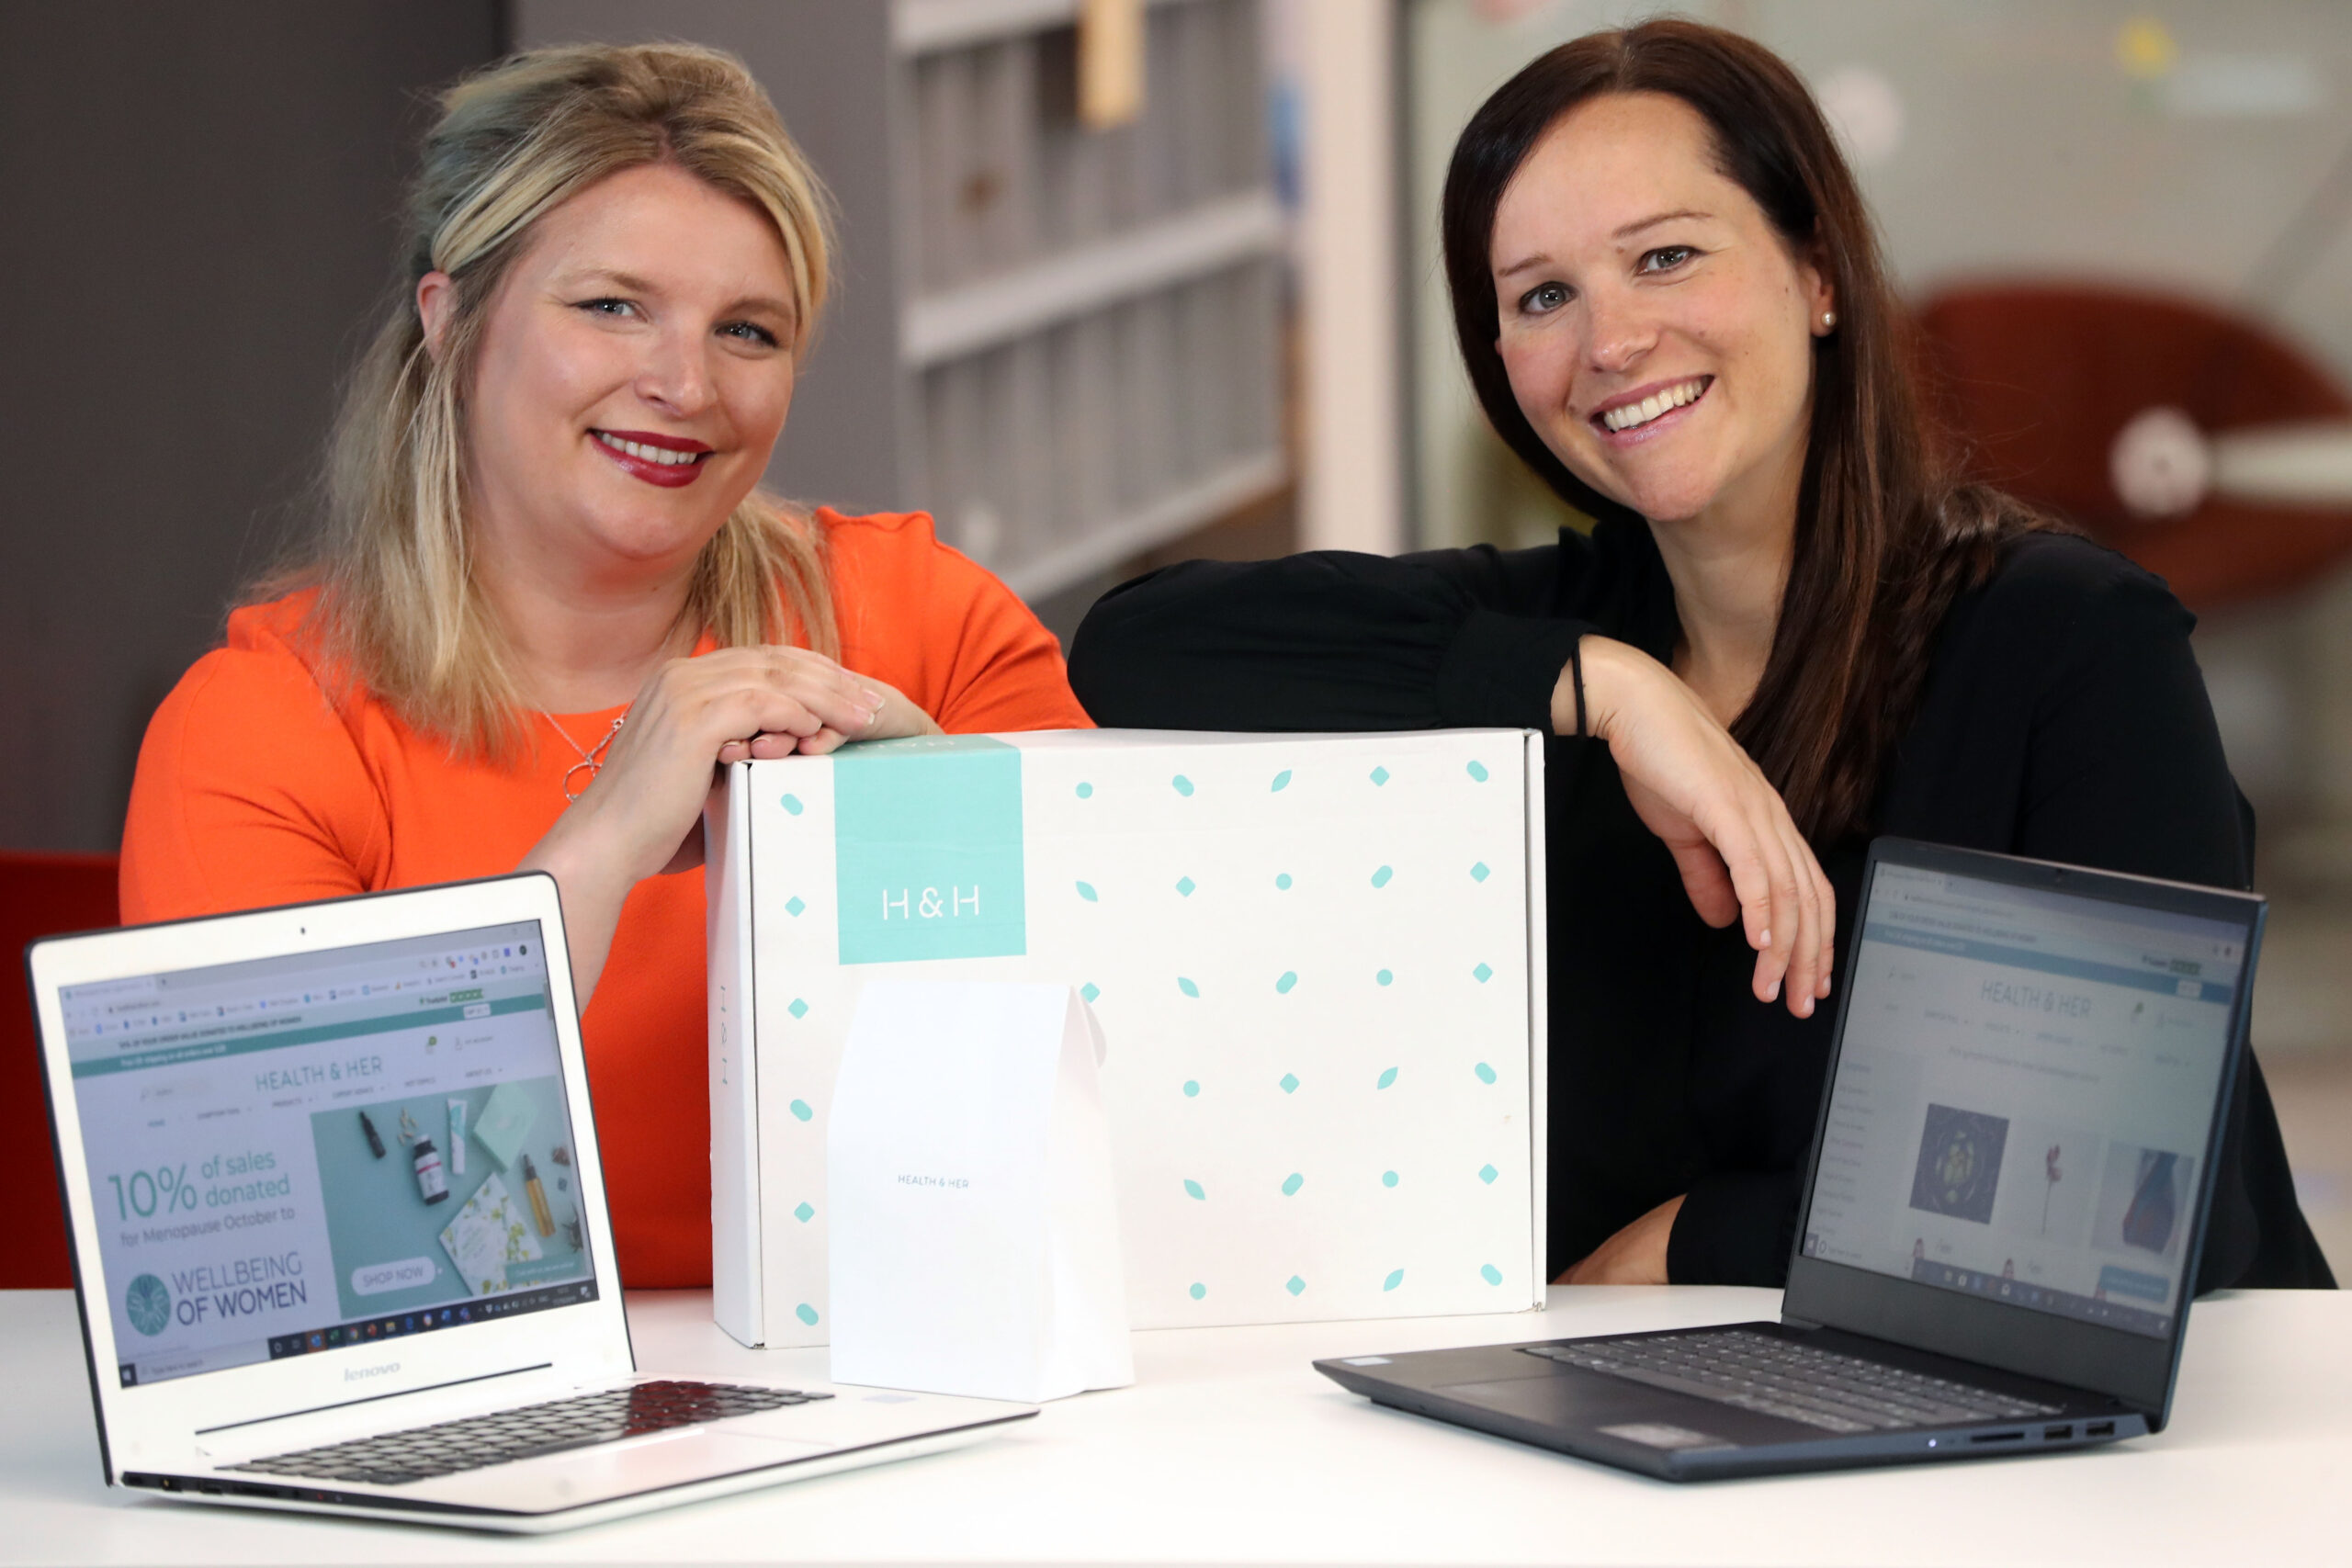 Cardiff health-tech company is changing women's lives forever with six-figure follow-on investment by the Development Bank of Wales